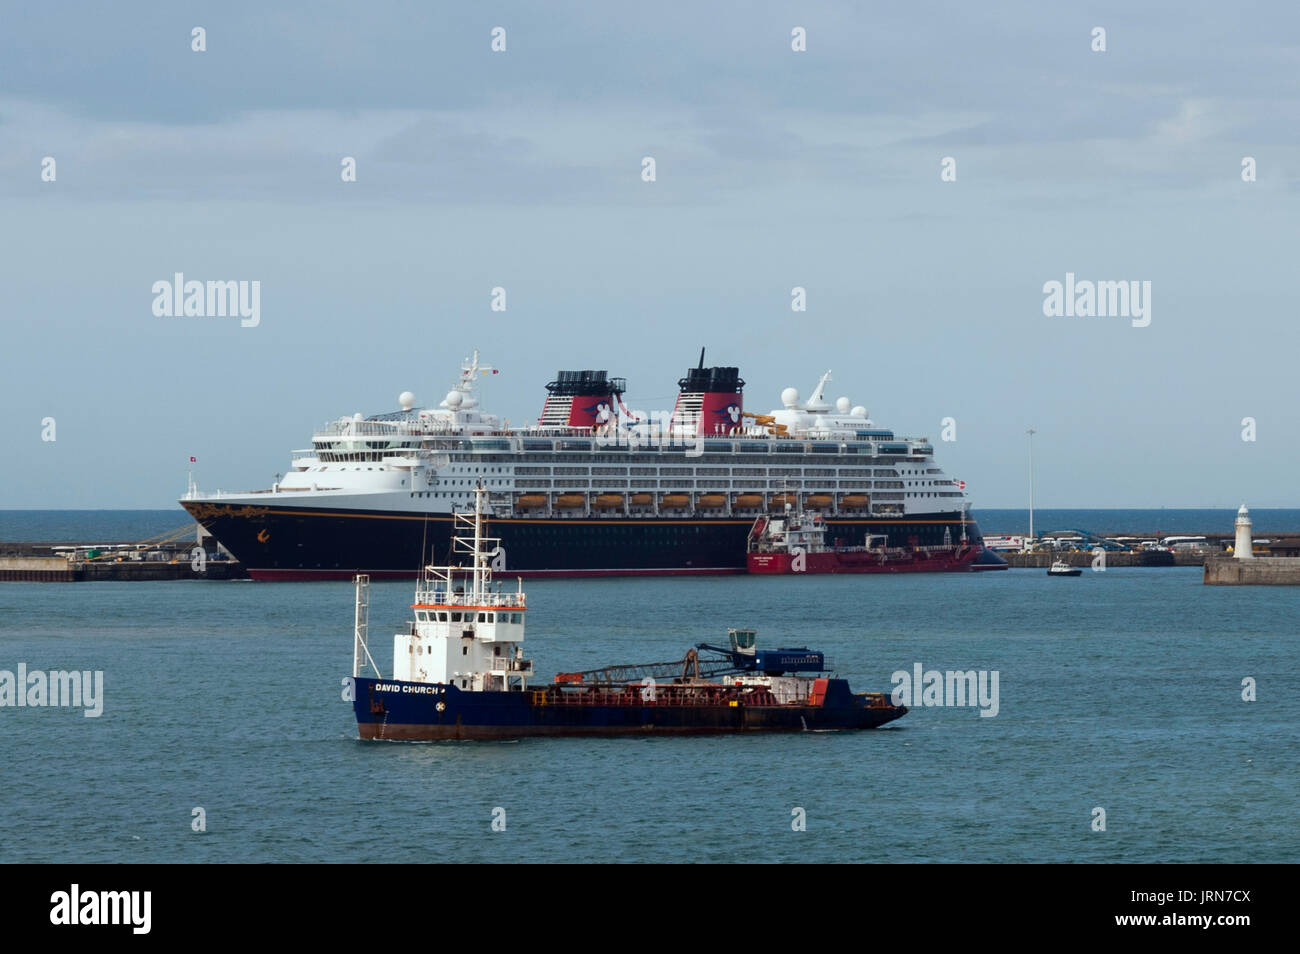 DISNEY MAGIC CRUISER LINER - 294 M LONG IN DOVER PORT © Frédéric BEAUMONT - Stock Image